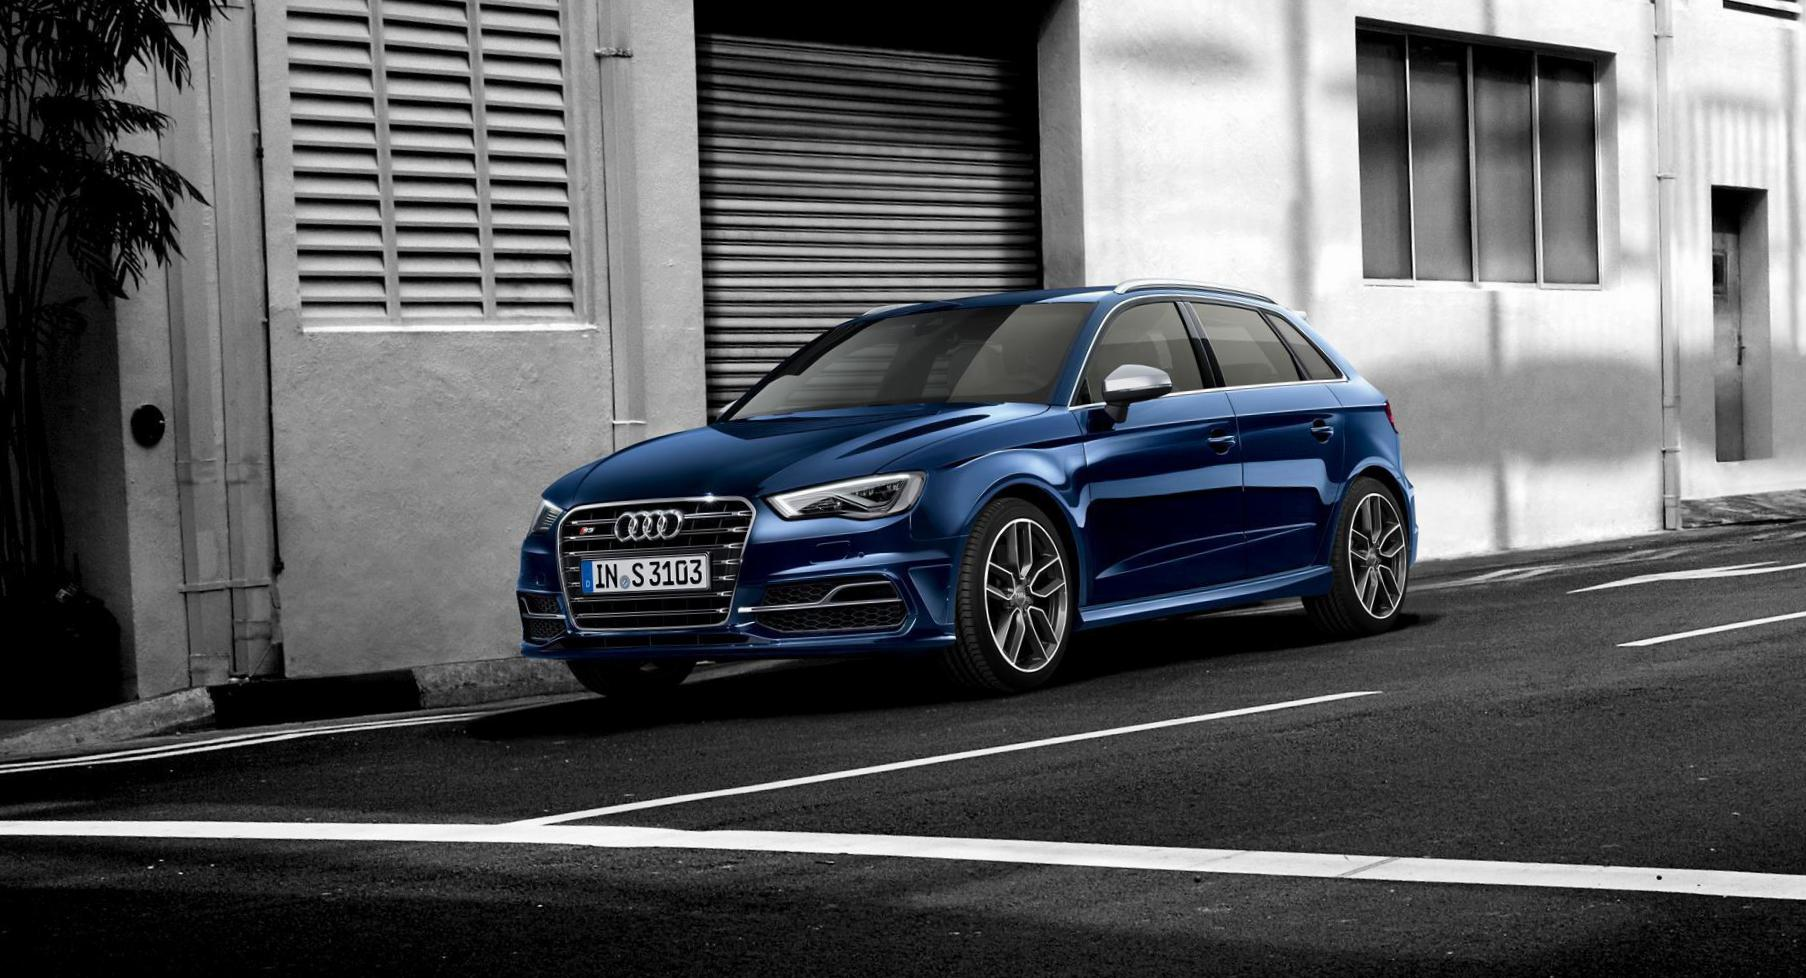 Audi S3 Specifications hatchback